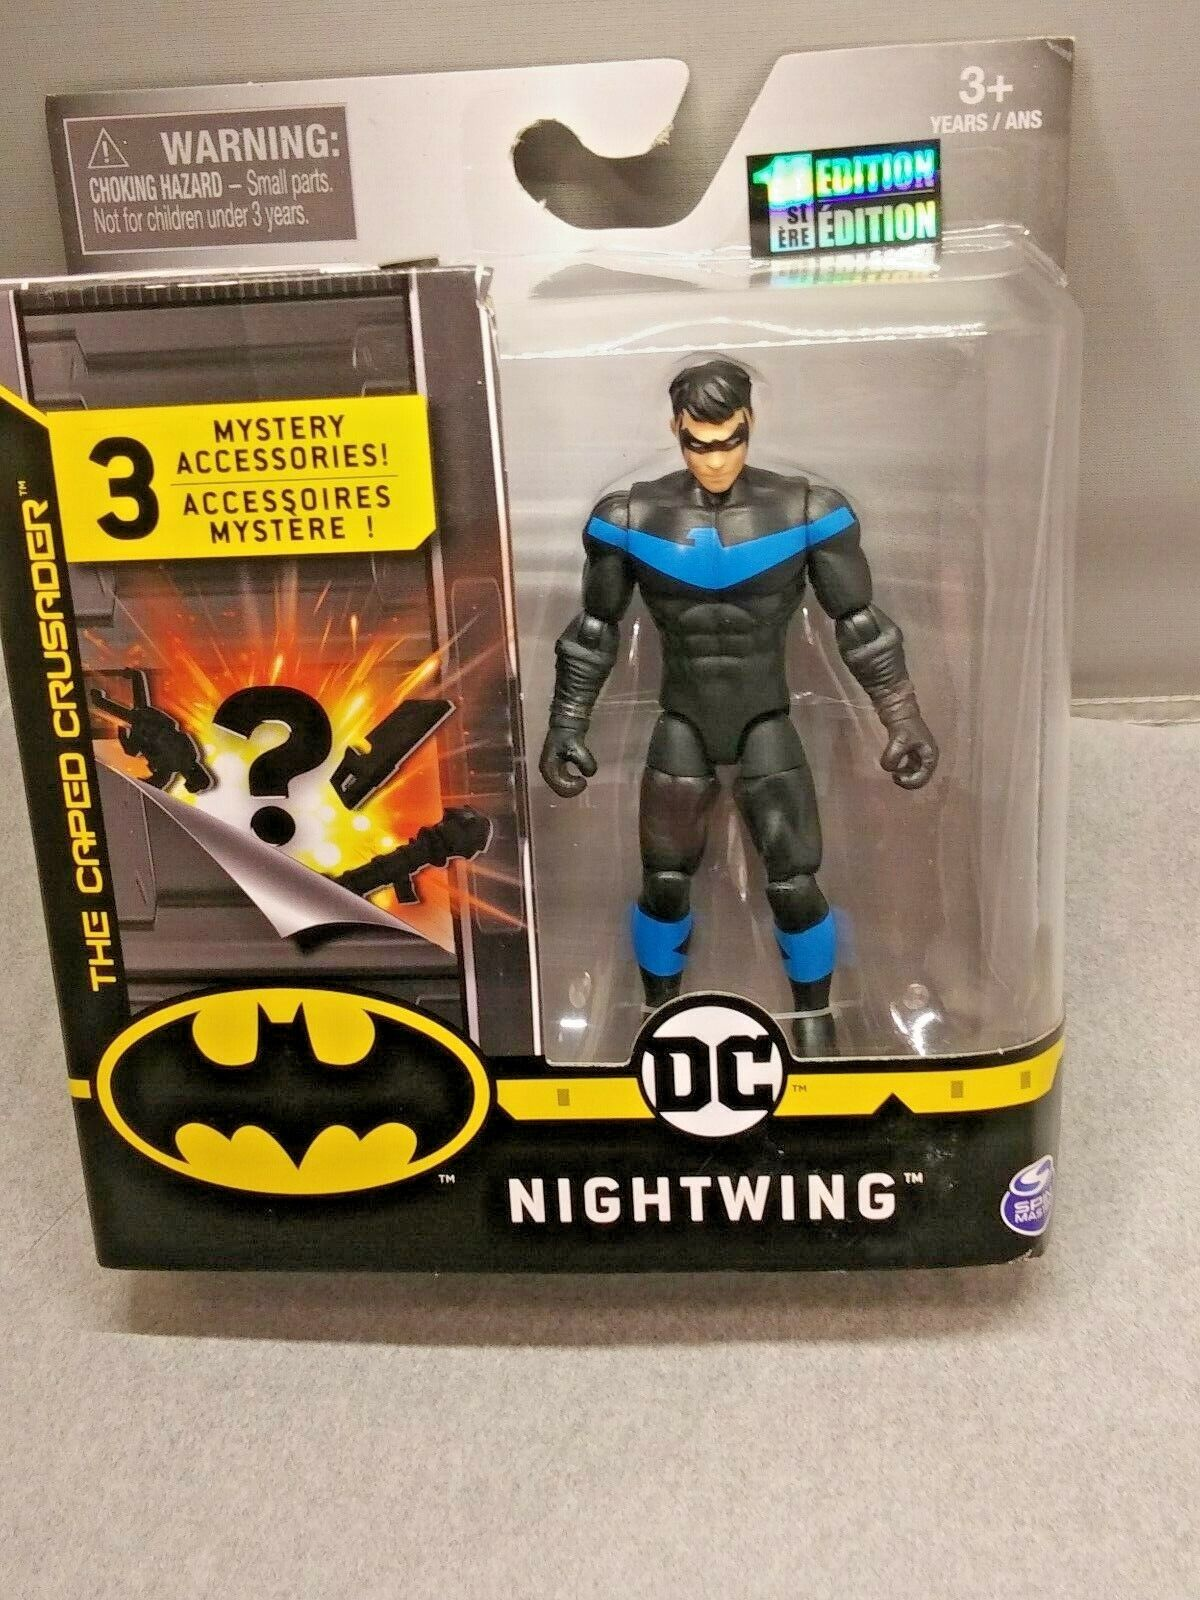 DC NIGHTWING 4 Inch Figure 1st Edition 3 Mystery Accessories